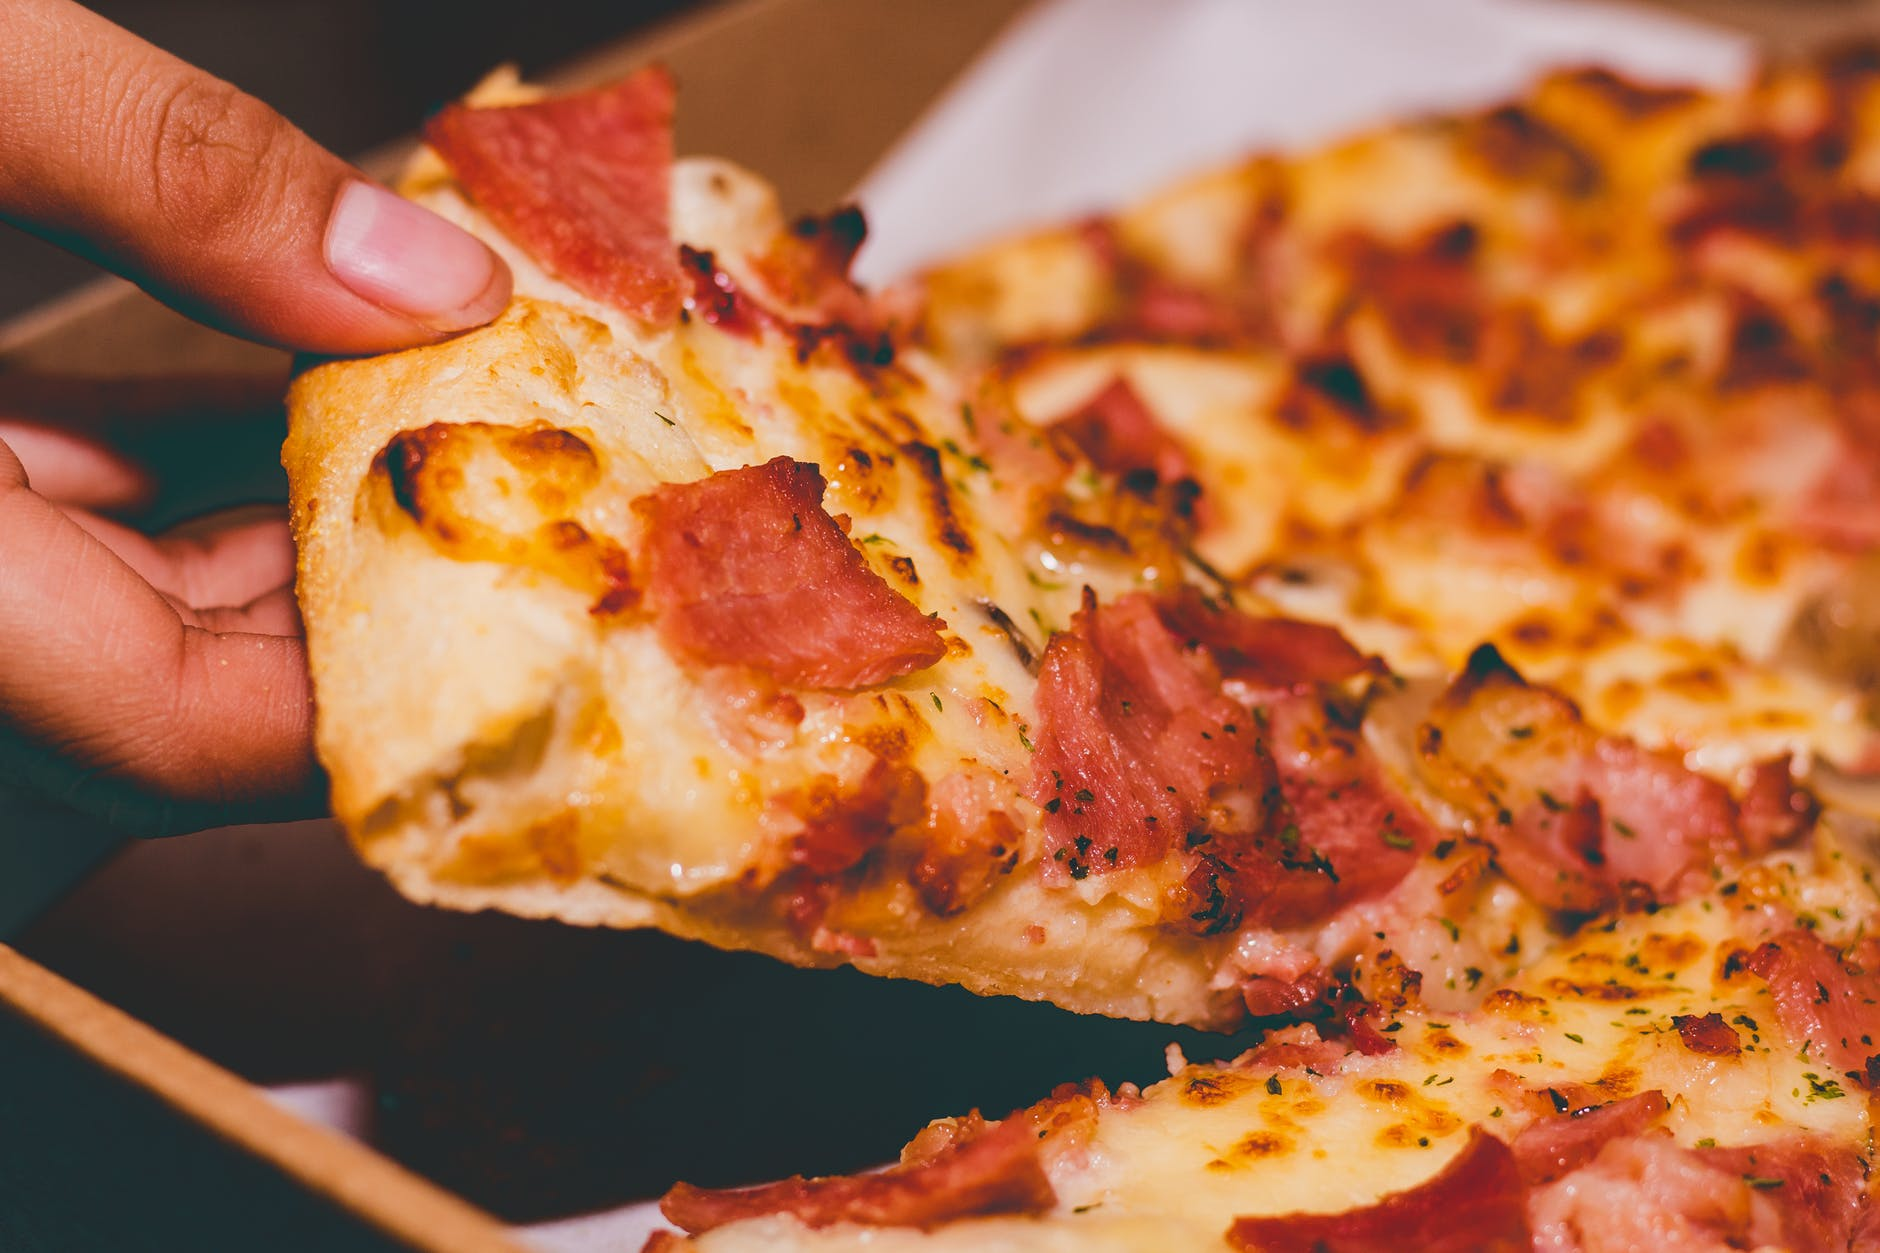 Pizza Franchise for Sale in Texas with over $110,000 in owner earnings